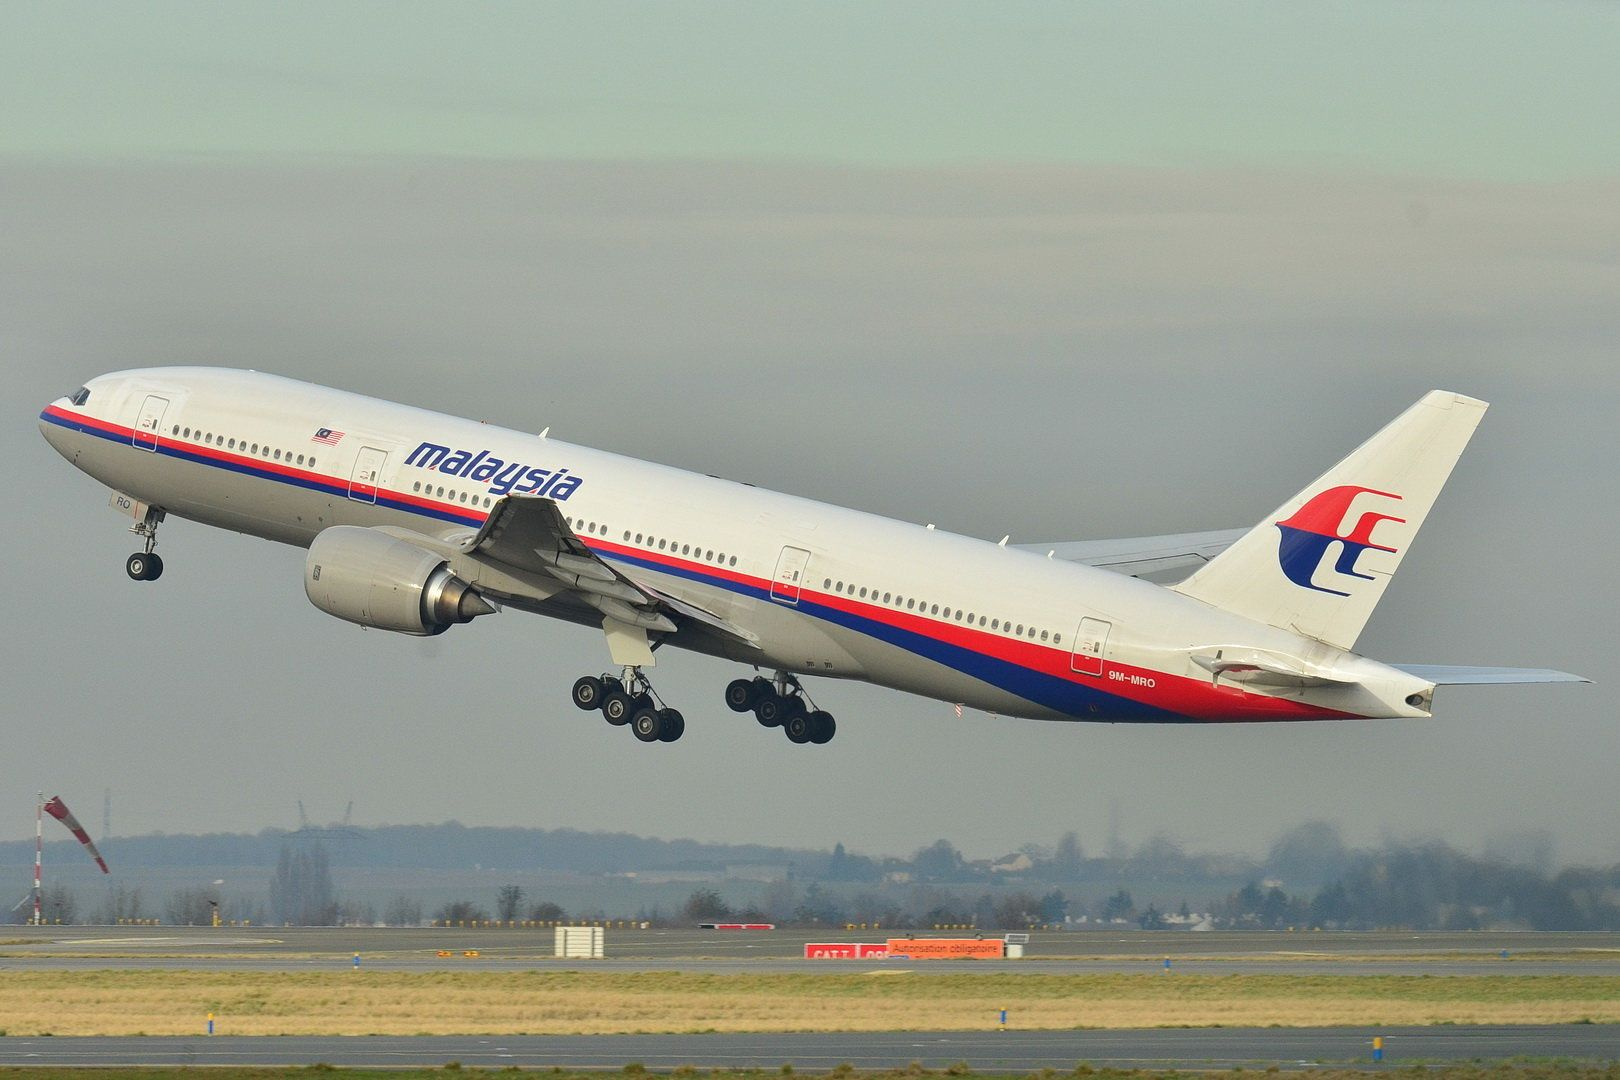 New Plane Debris 'Almost Certainly' From MH370, Investigators